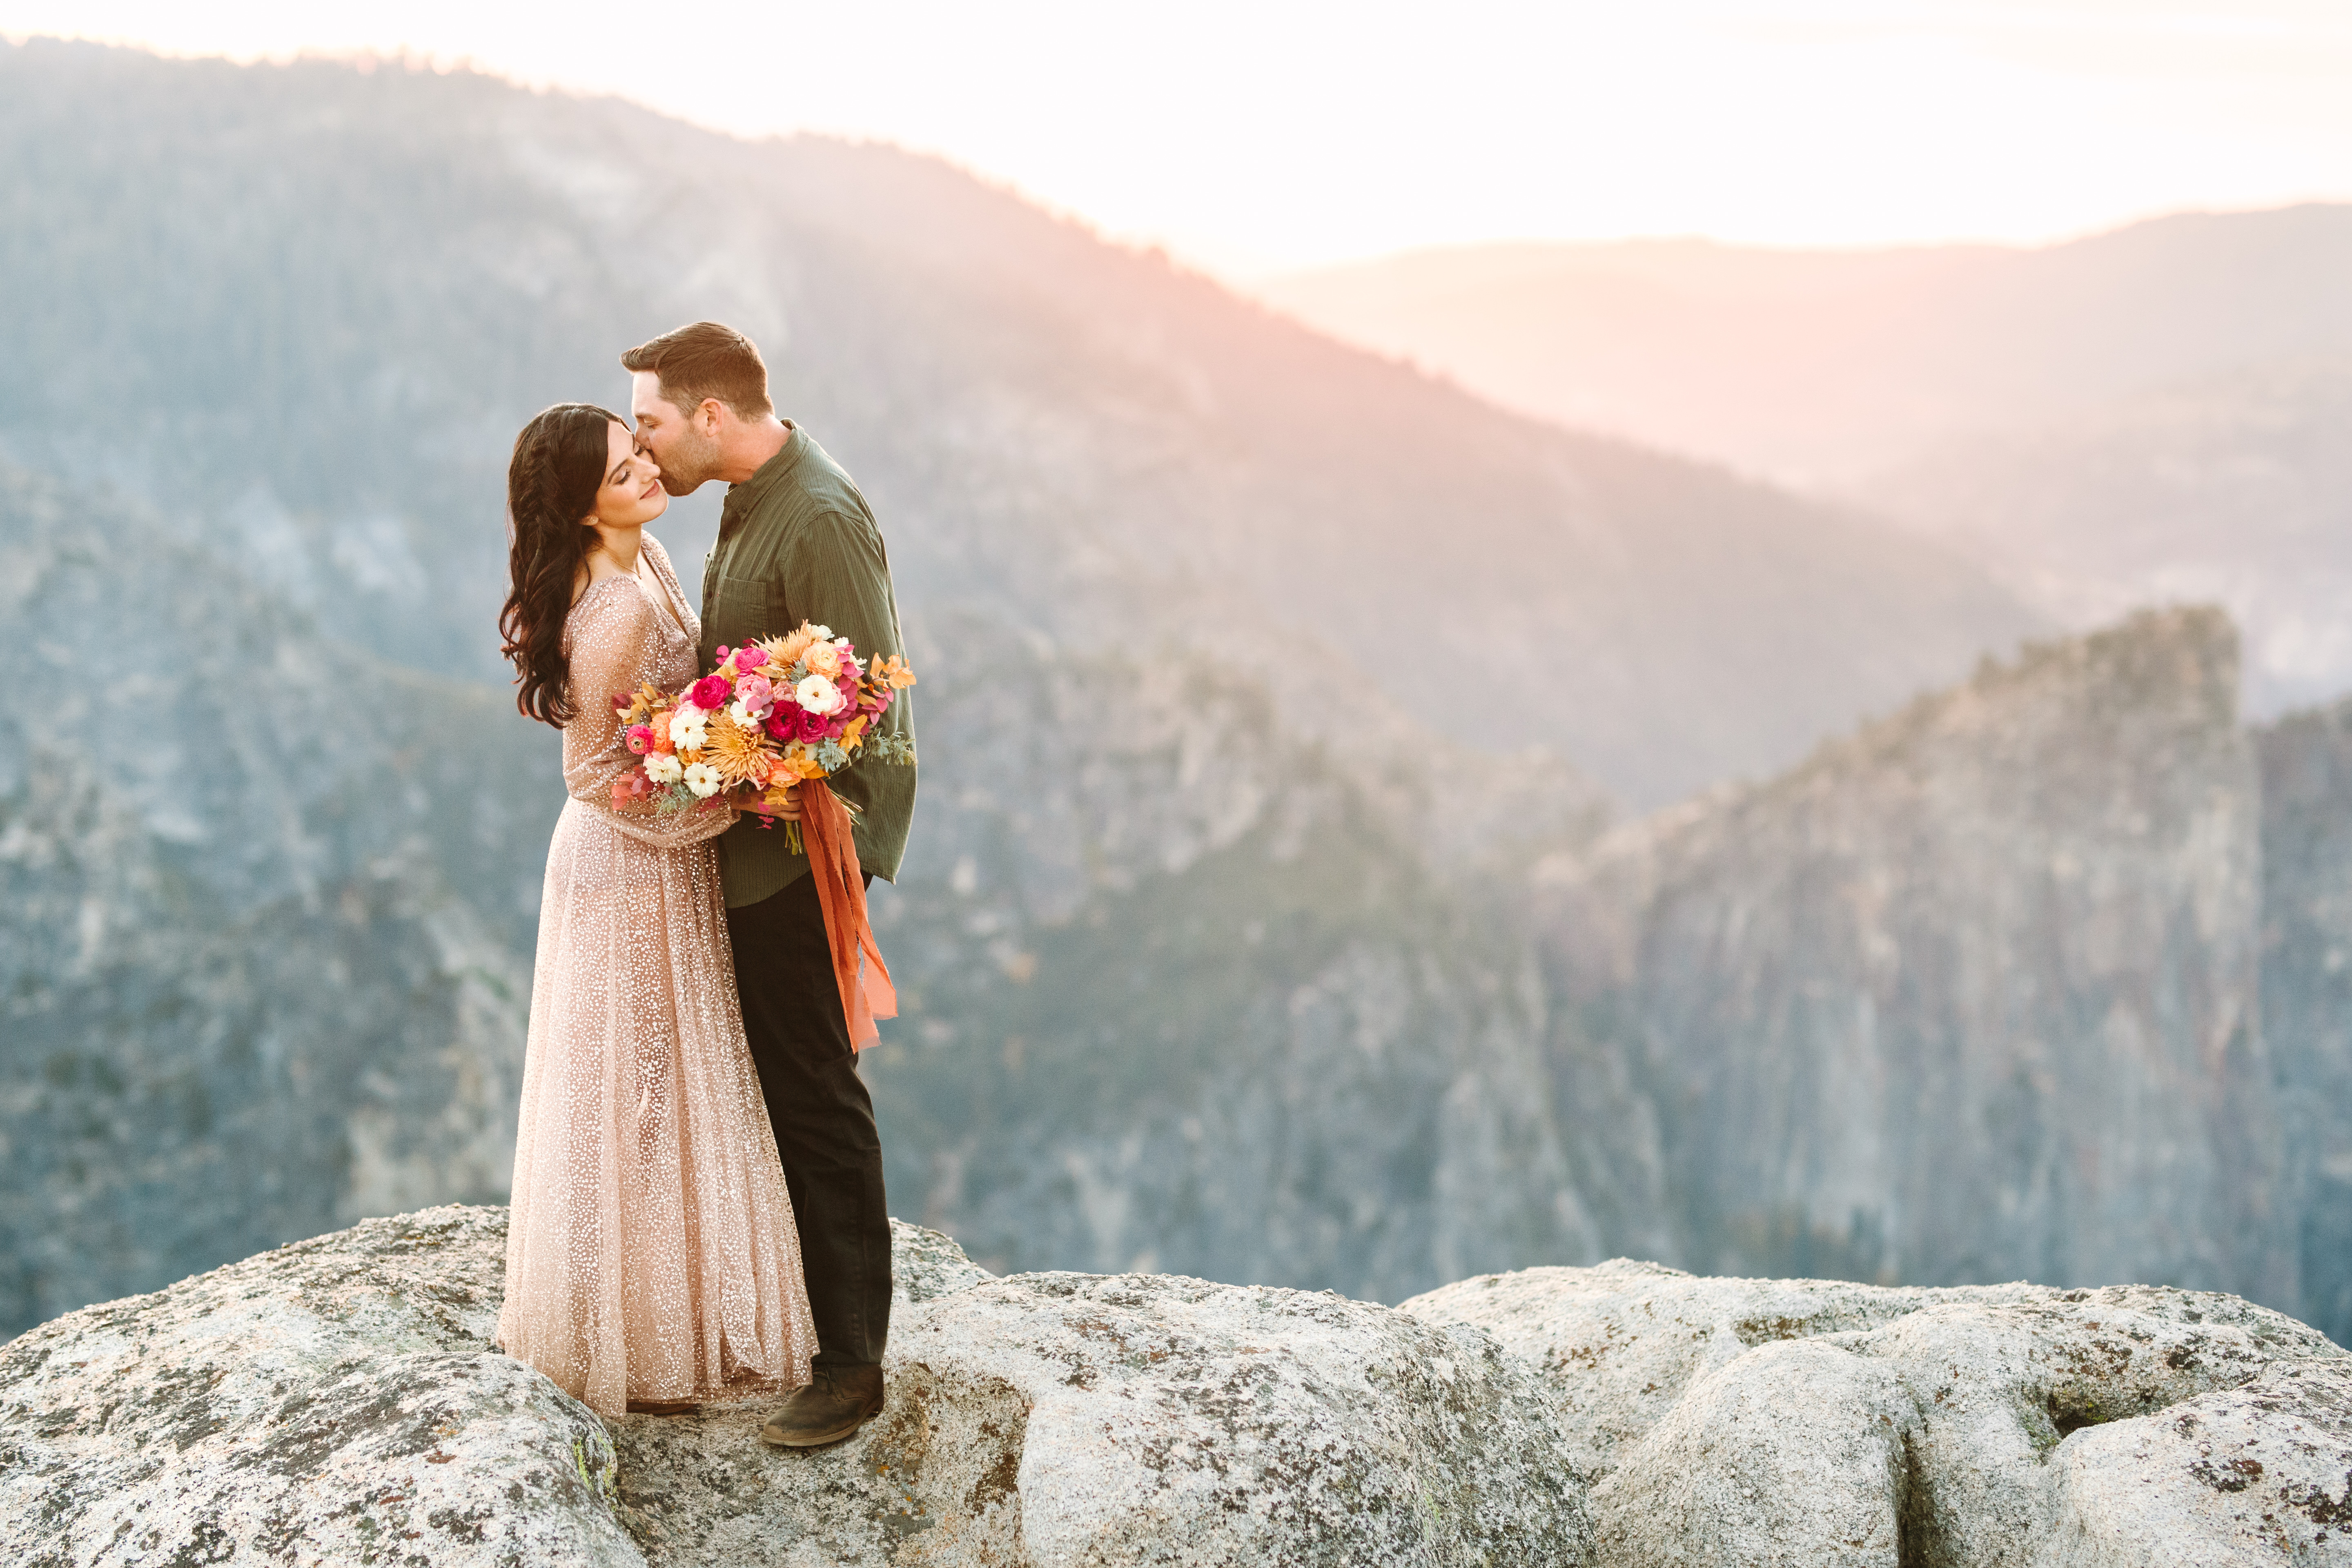 mary costa photo, yosemite elopement, yosemite wedding, elopement florist, los angeles florist, la f